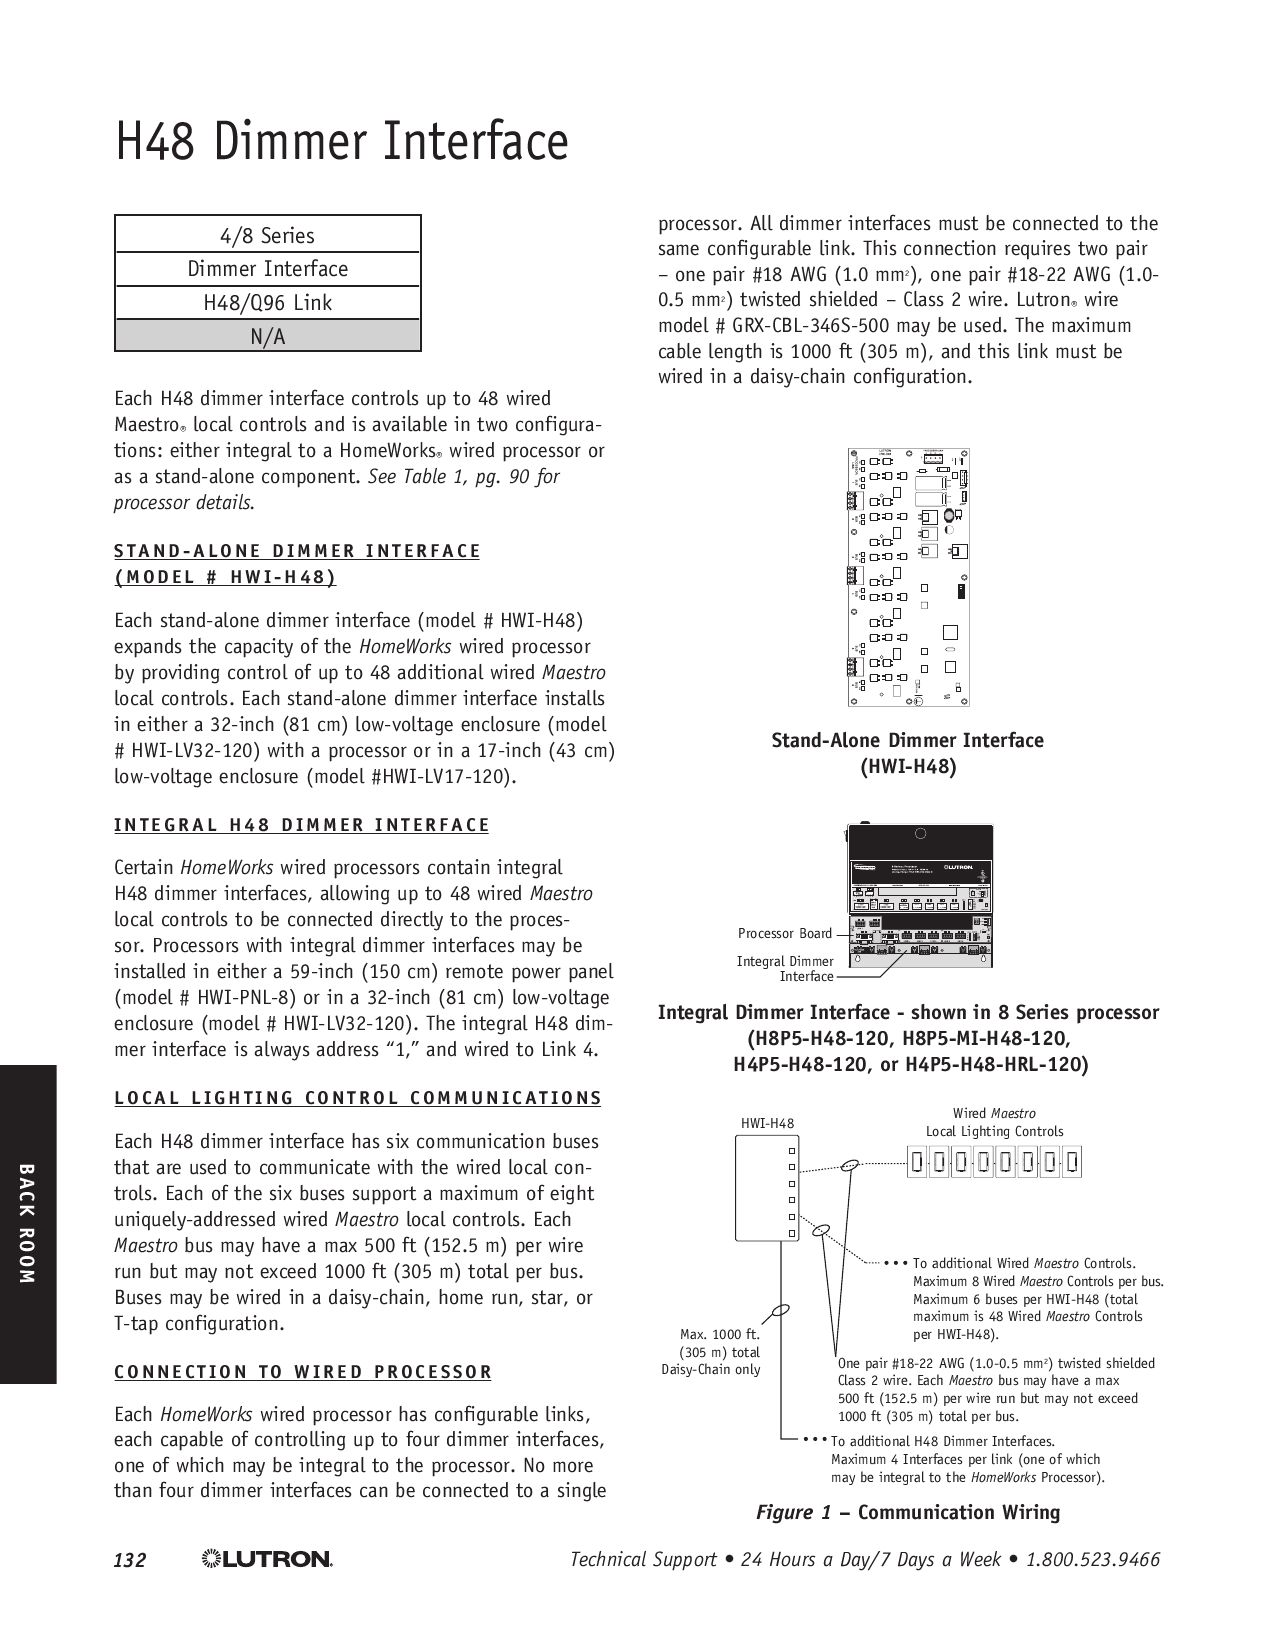 lutron switch wiring diagram h48 dimmer interface i nt roduct i on sp eci fi by ...